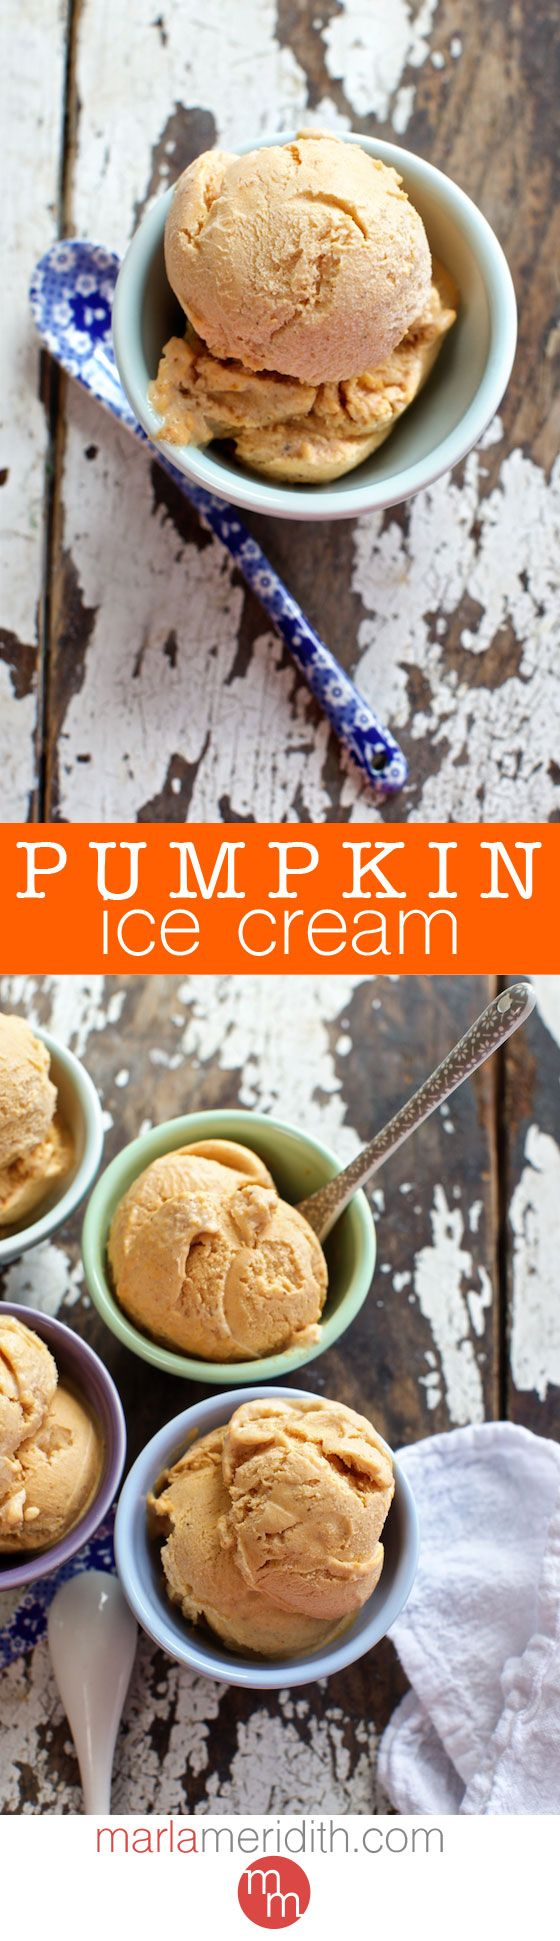 Maple Pumpkin Ice Cream   This dessert recipe is bursting with fall flavors! MarlaMeridith.com ( @marlameridith )